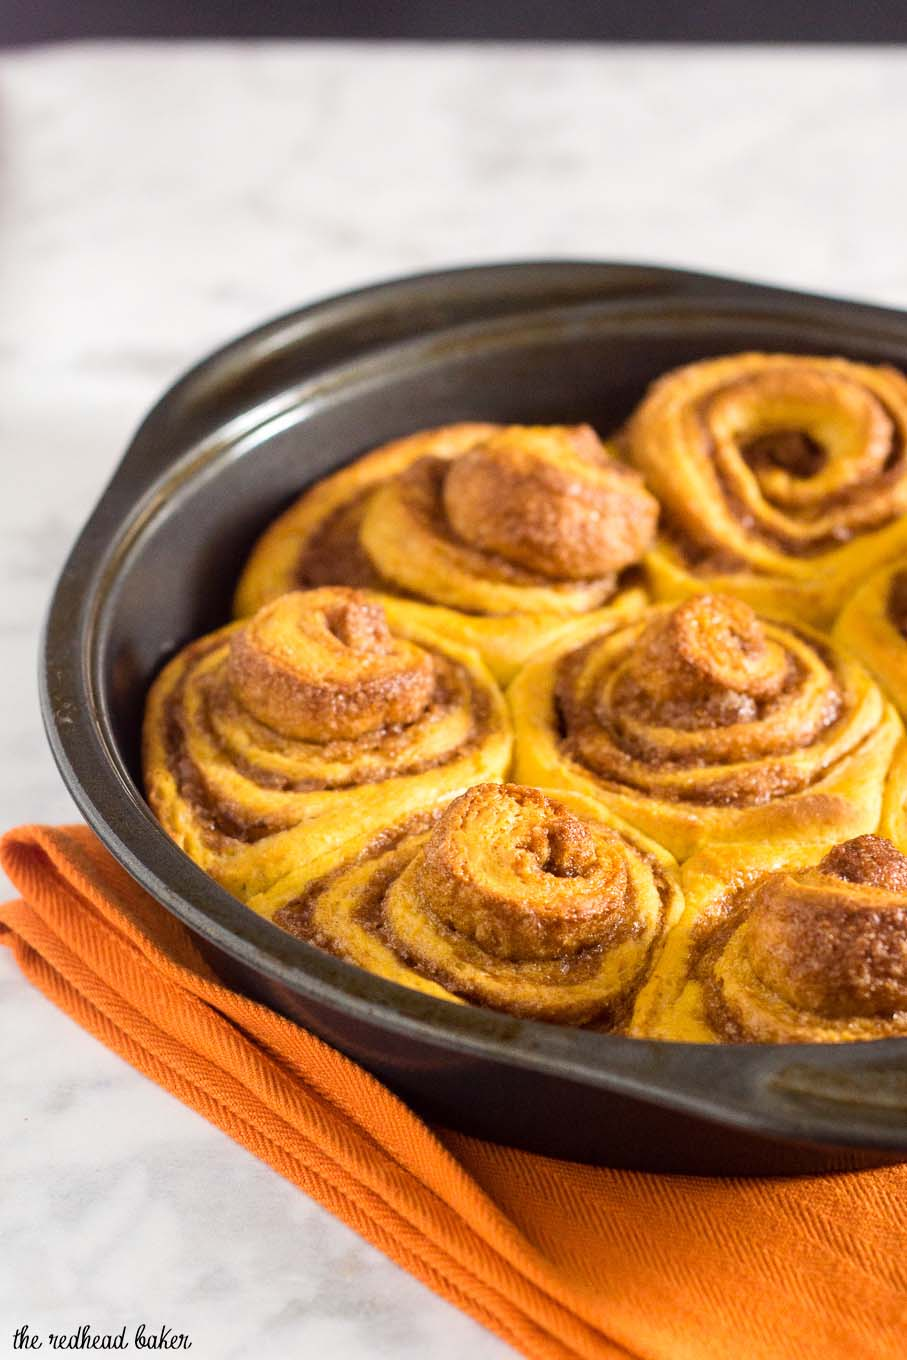 Pumpkin cinnamon rolls are a delicious way to start a fall morning! Sweet dough is flavored with pumpkin, rolled with a cinnamon filling, and topped with cream cheese drizzle. #PumpkinWeek